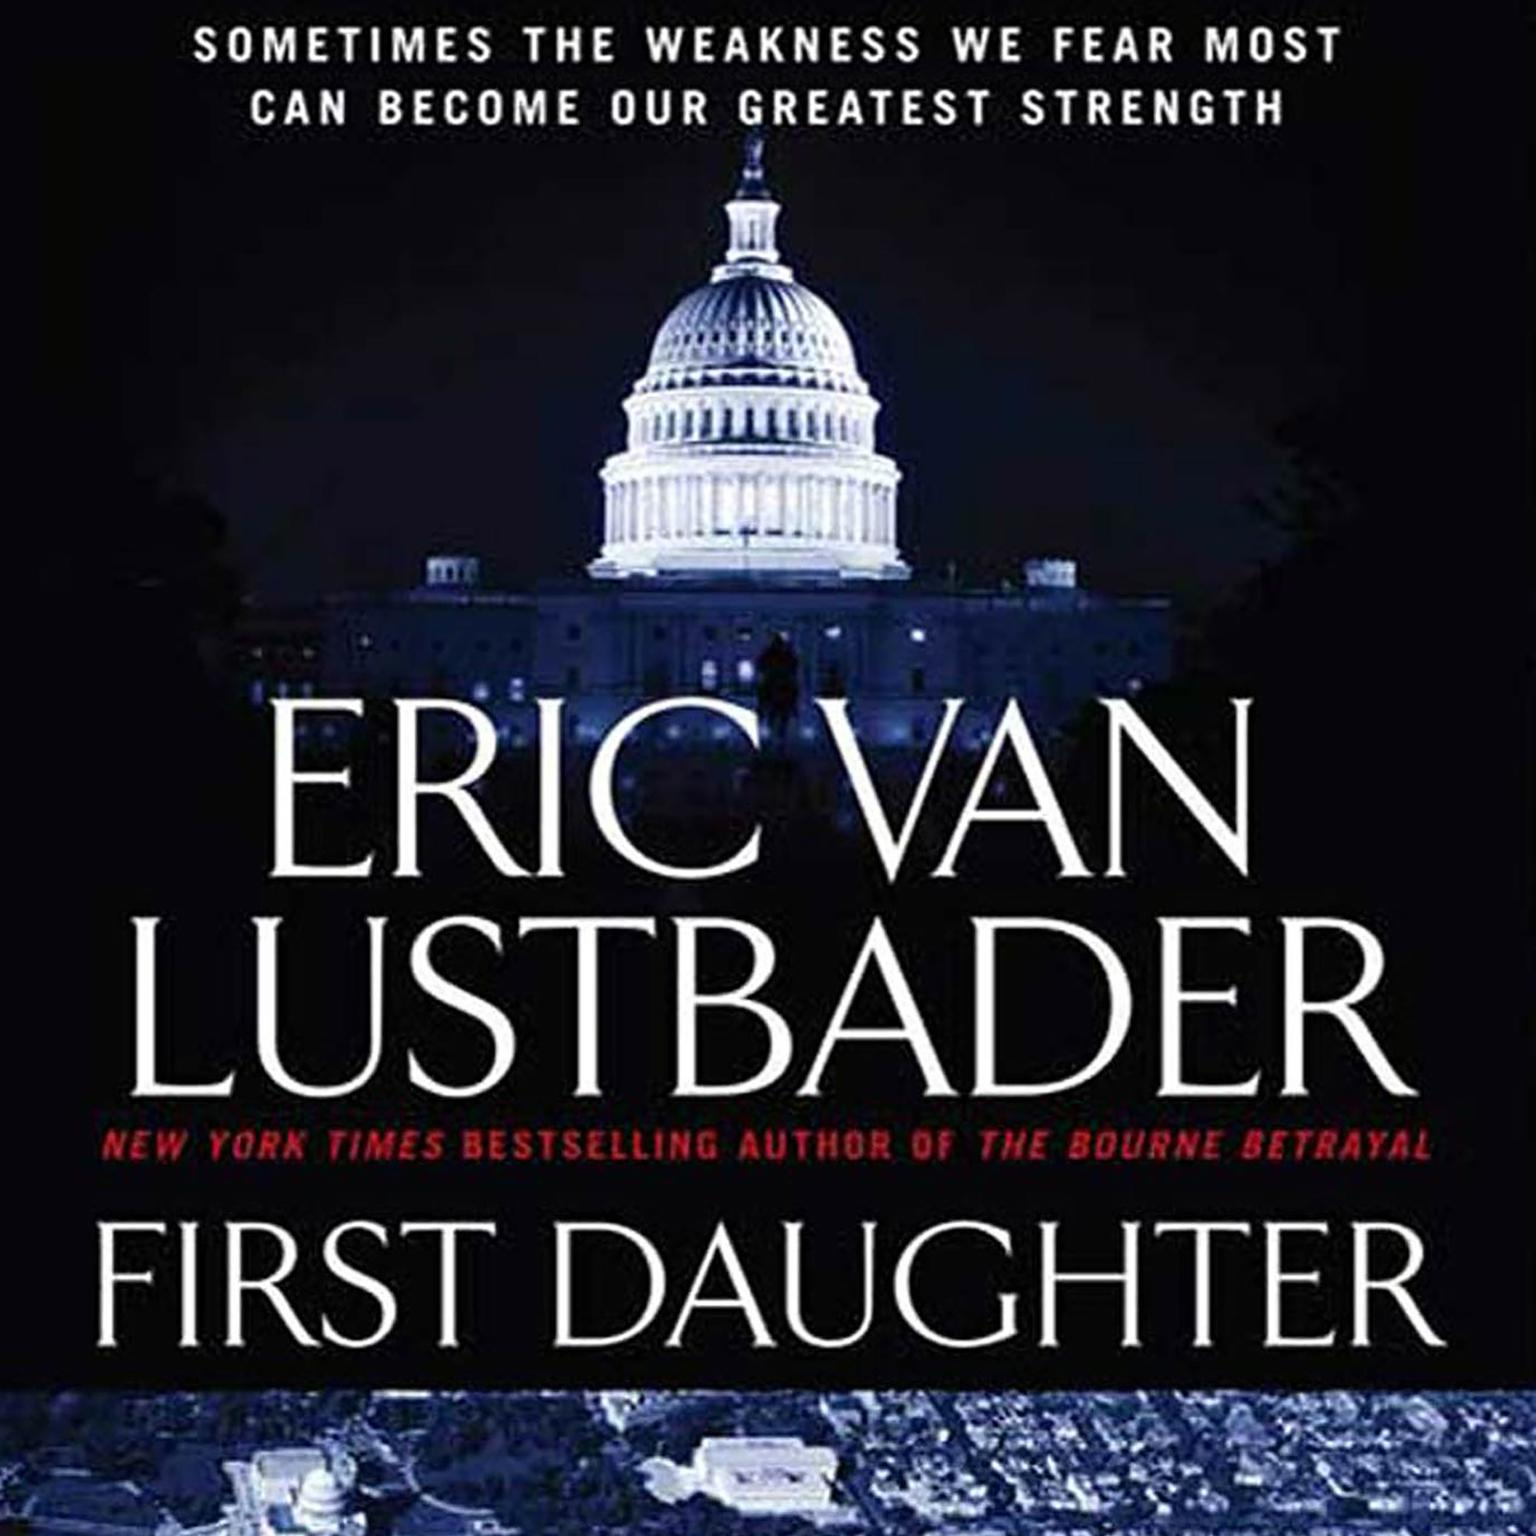 Printable First Daughter: A McClure/Carson Novel Audiobook Cover Art